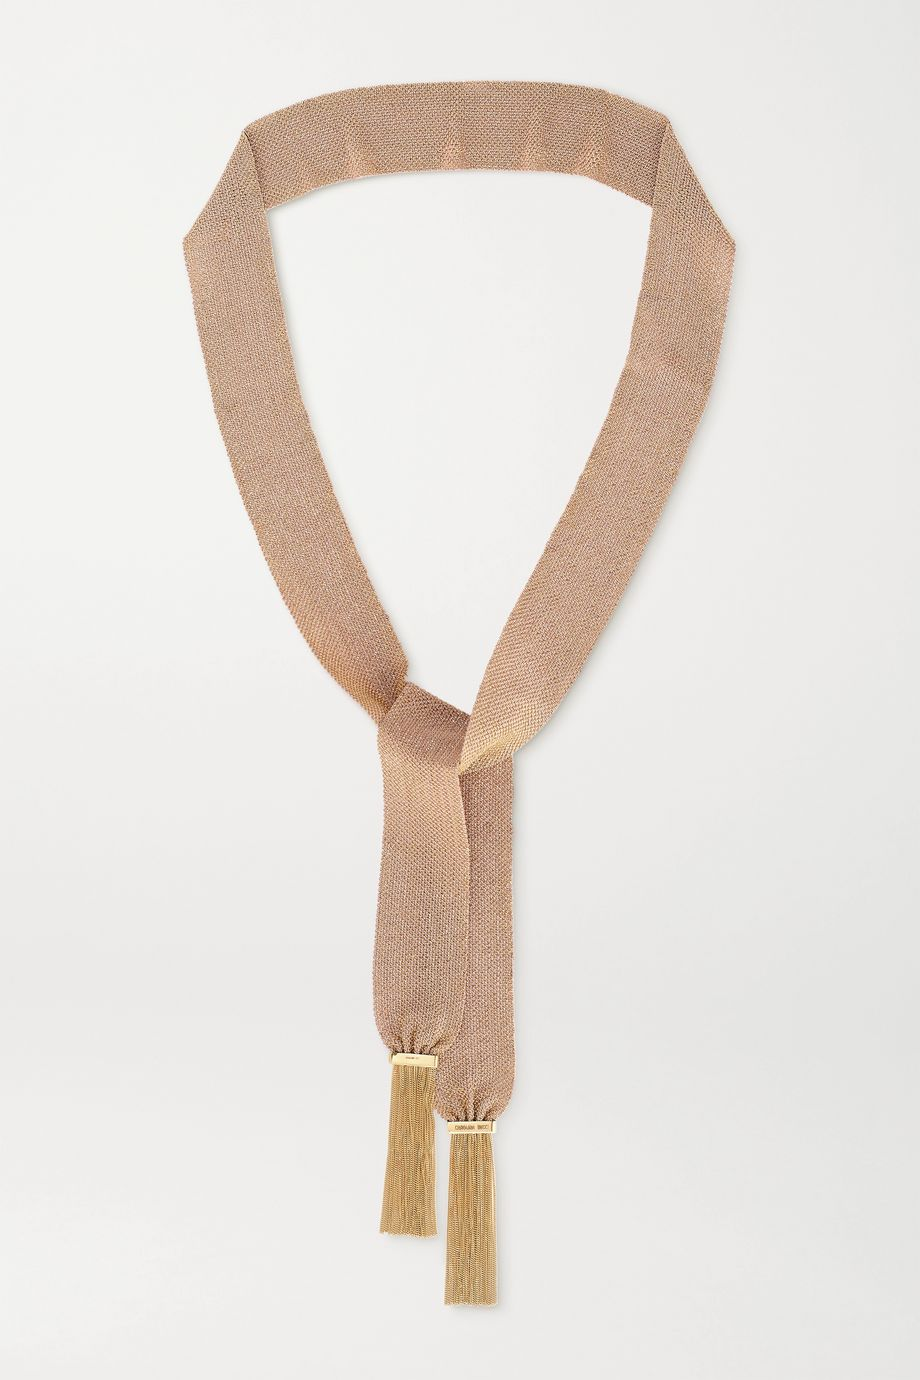 Carolina Bucci Pinched 18-karat gold and silk necklace